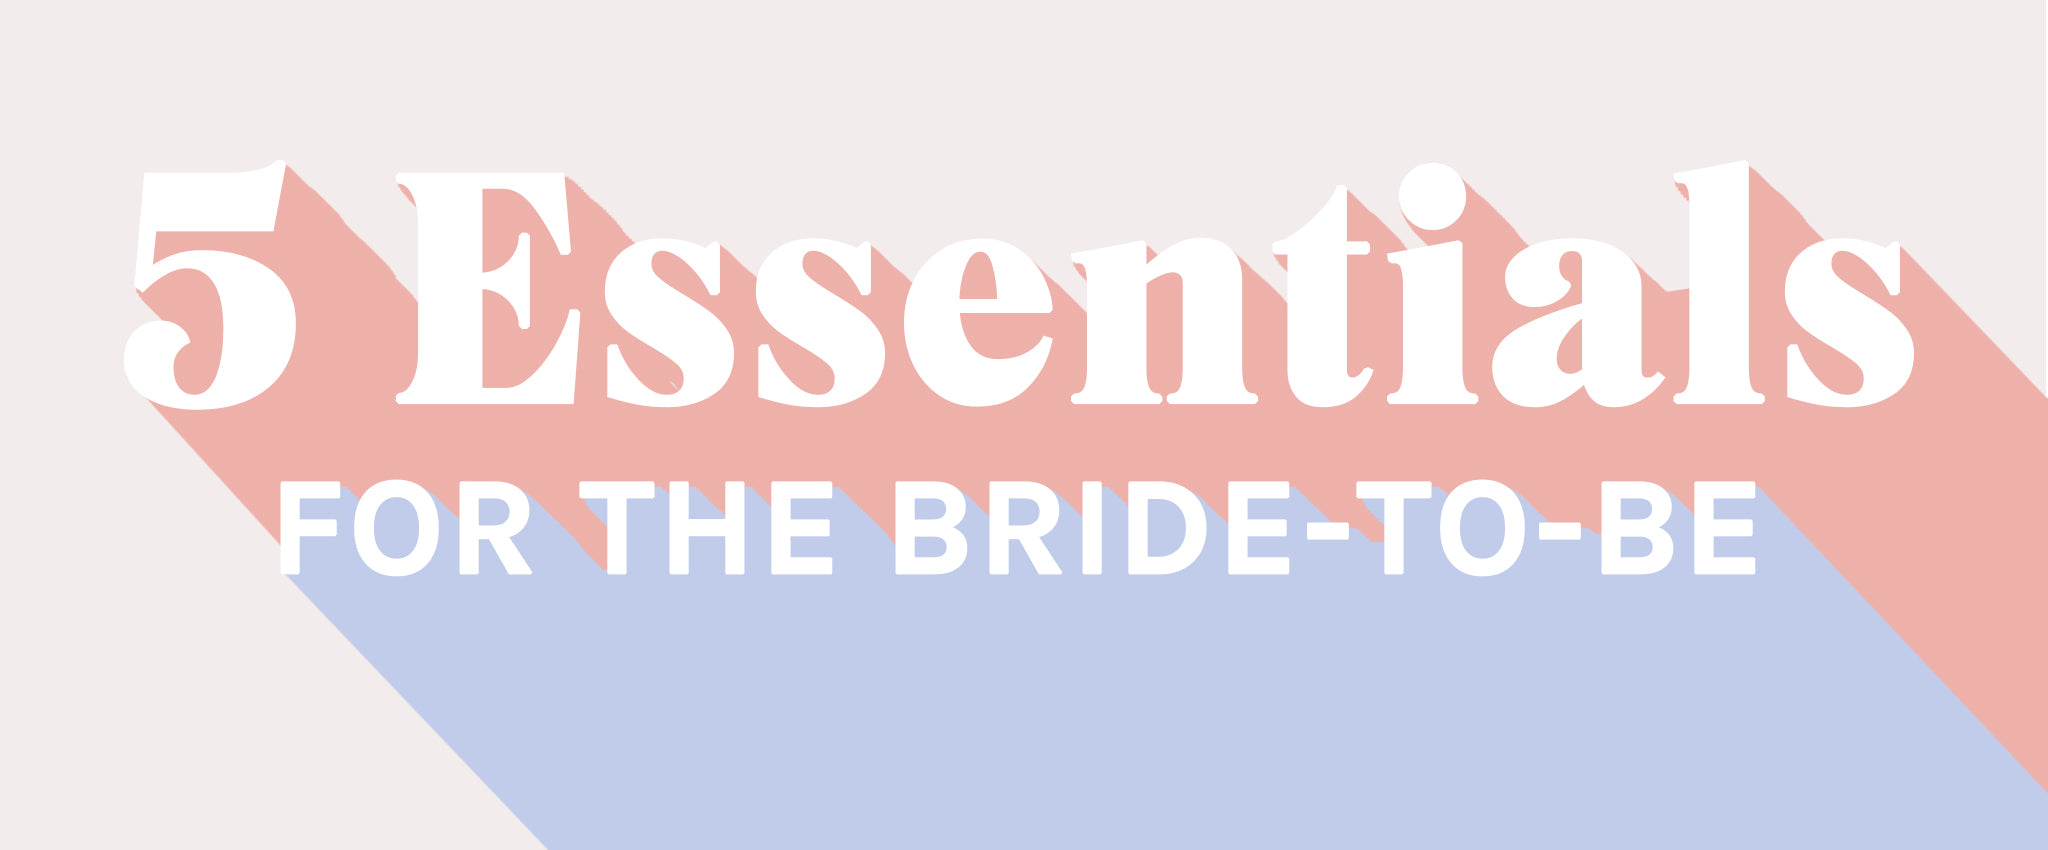 5 Bride Gift Essentials